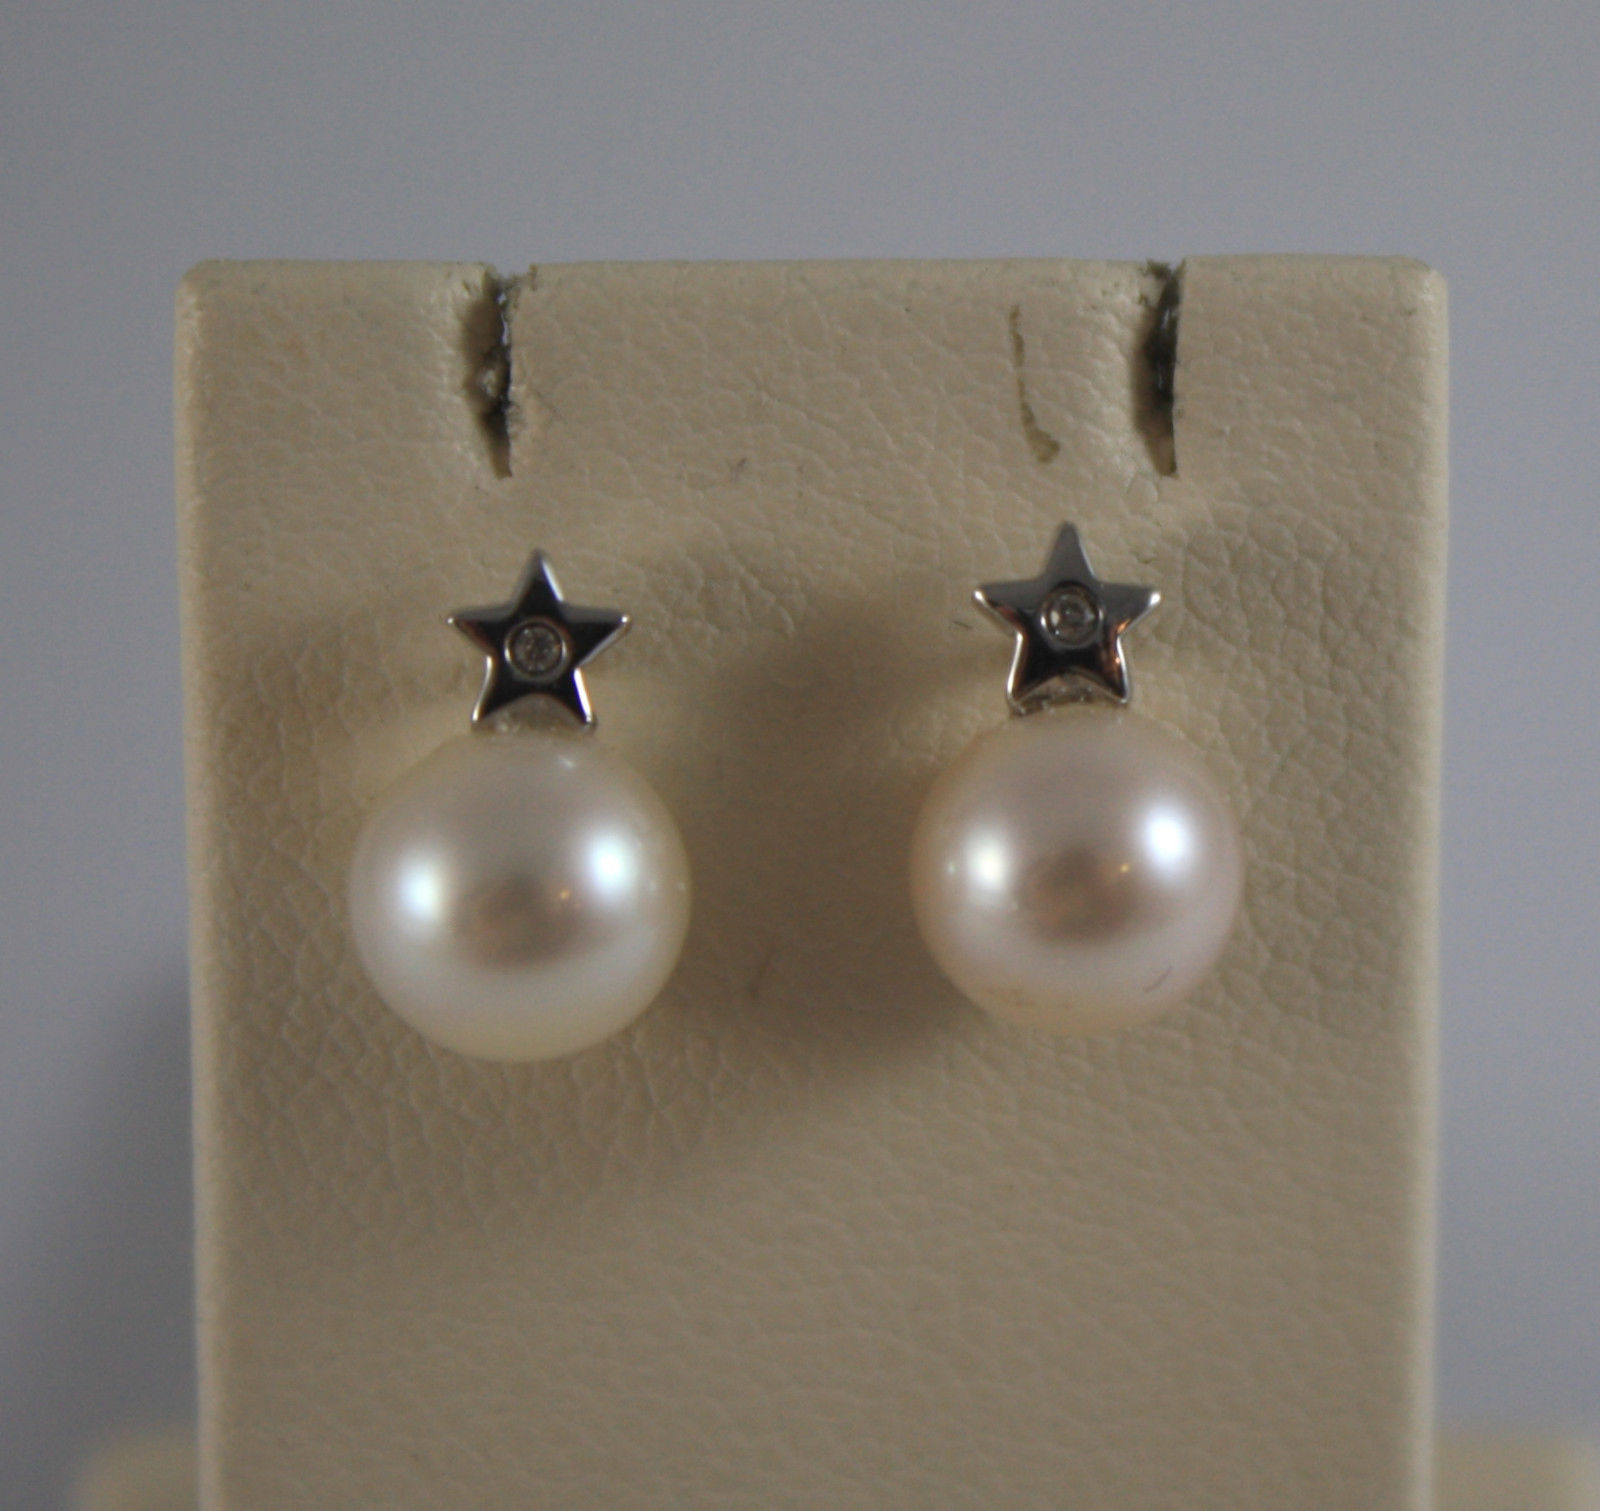 SOLID 18K WHITE GOLD EARRINGS, WITH WHITE PEARLS AND DIAMONDS 0,02 CT.